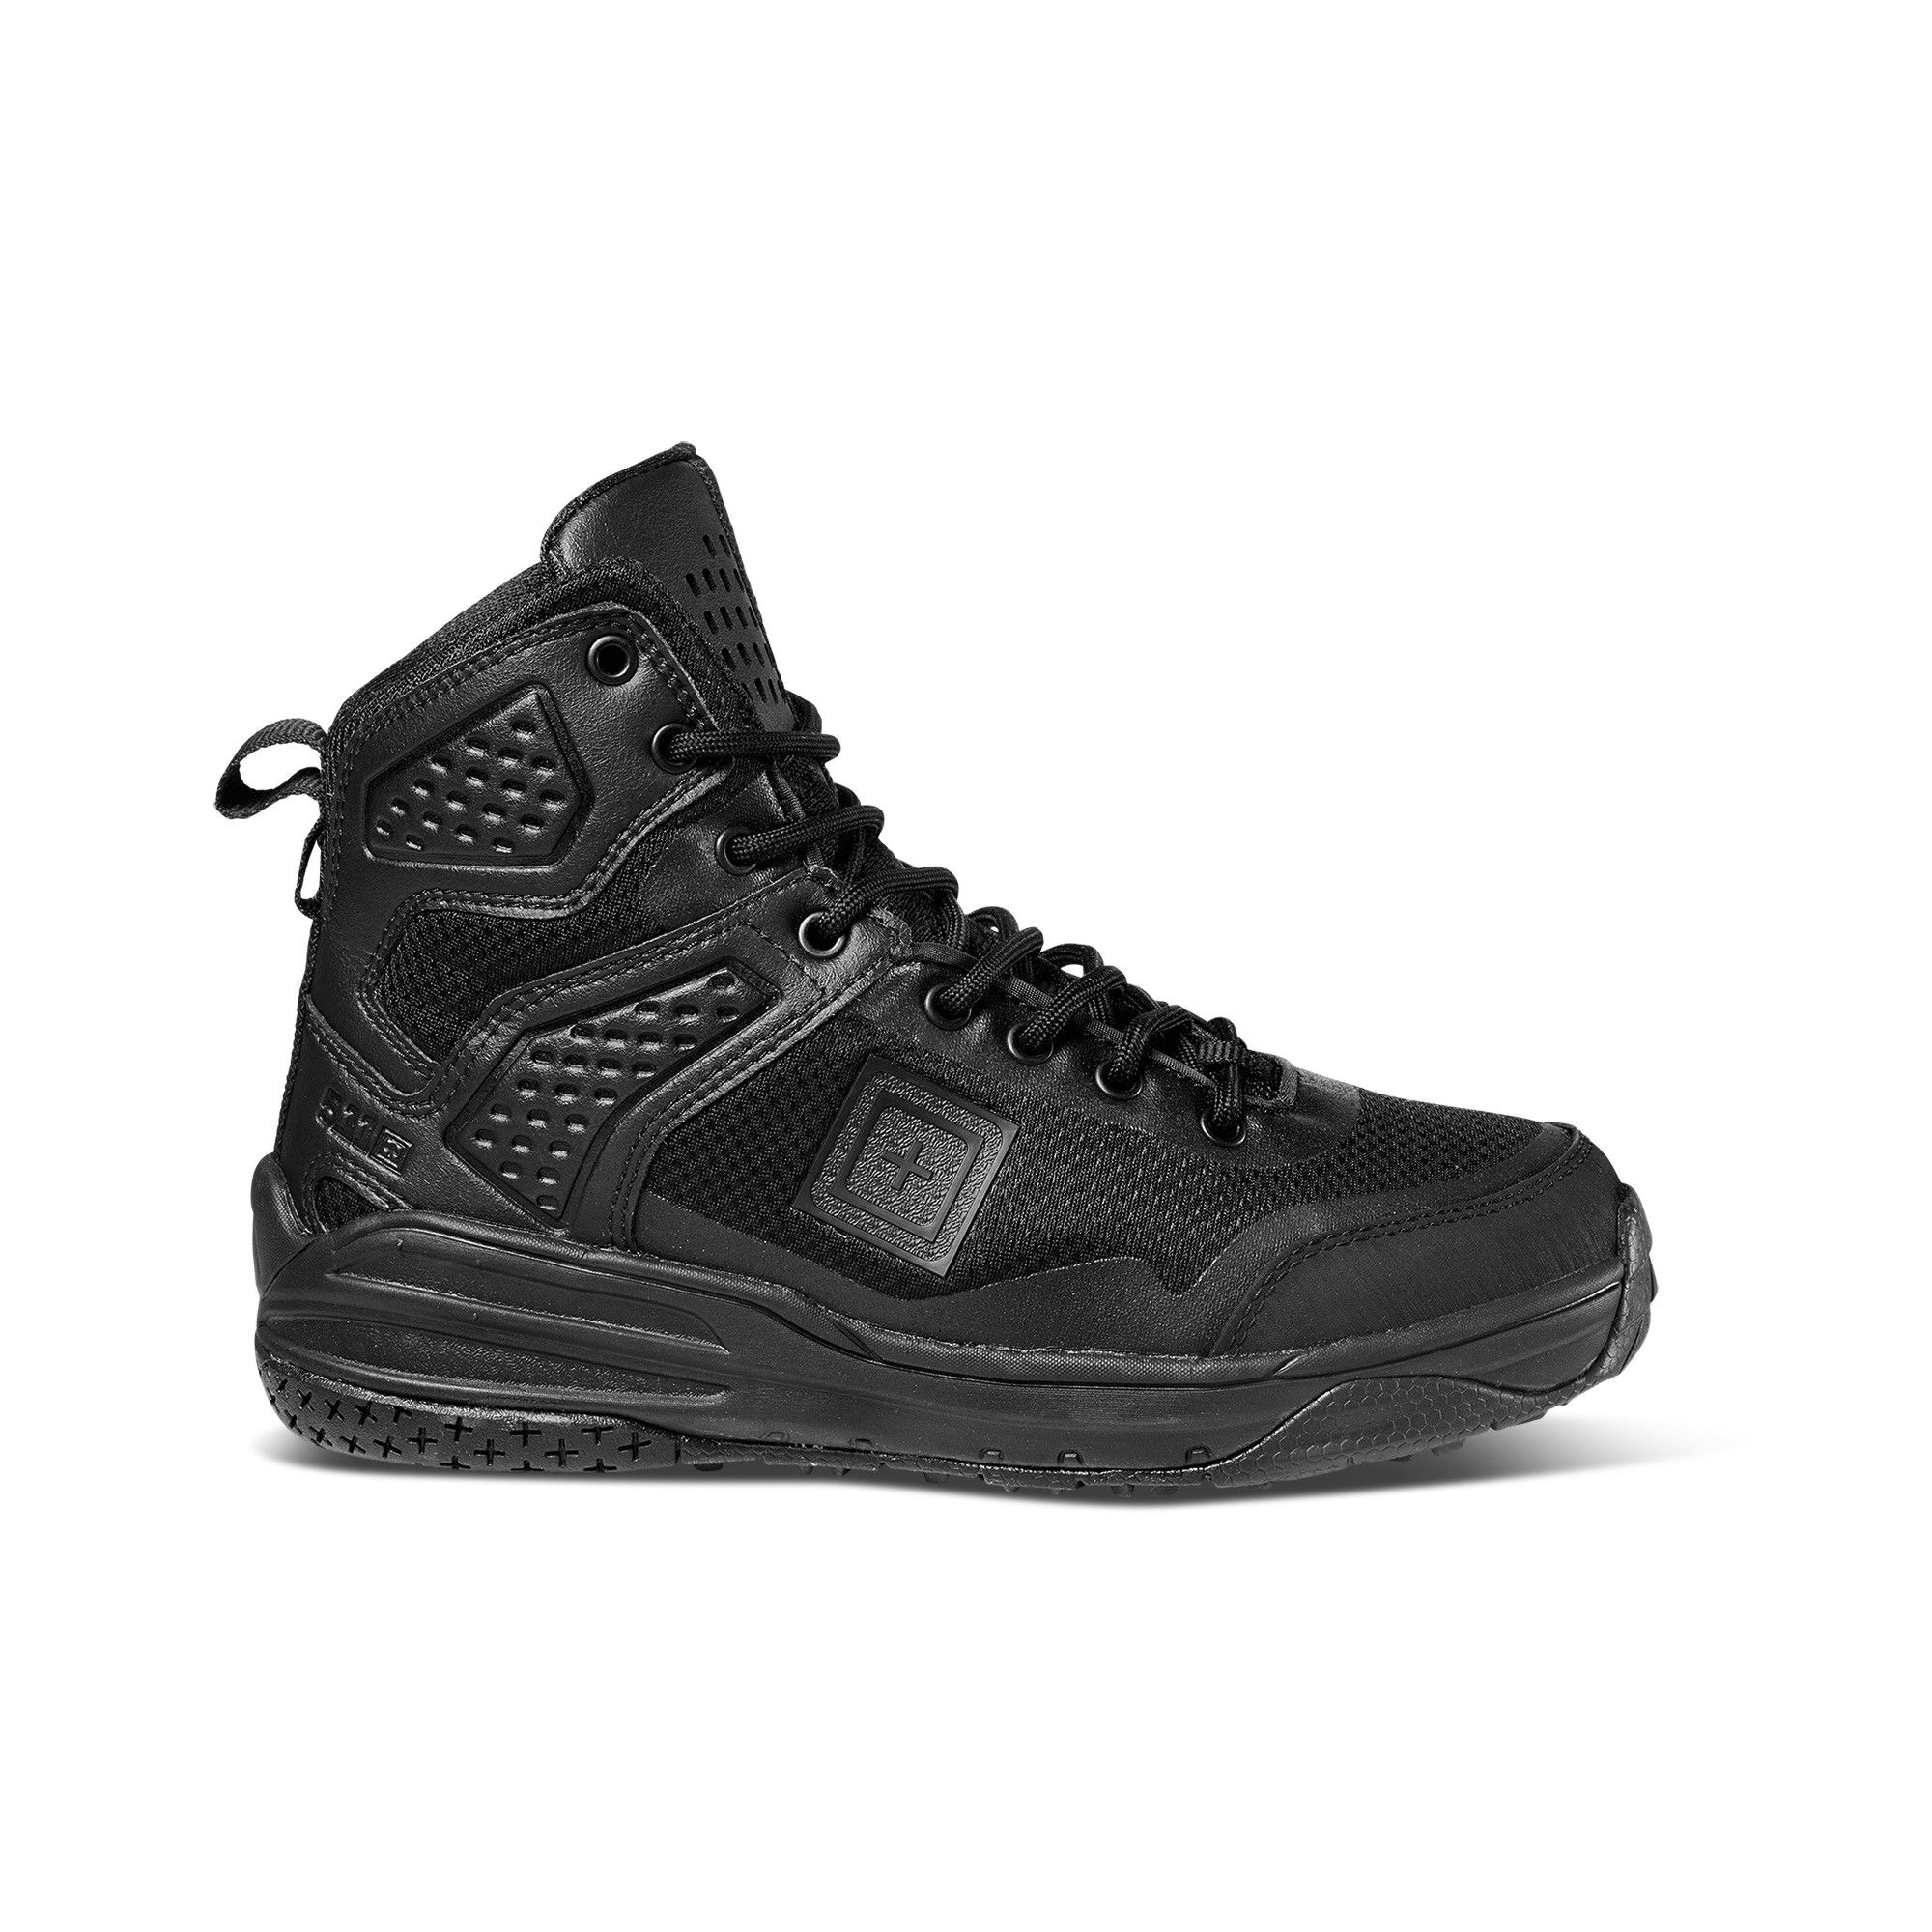 Halcyon tactical stealth boot with images black boots